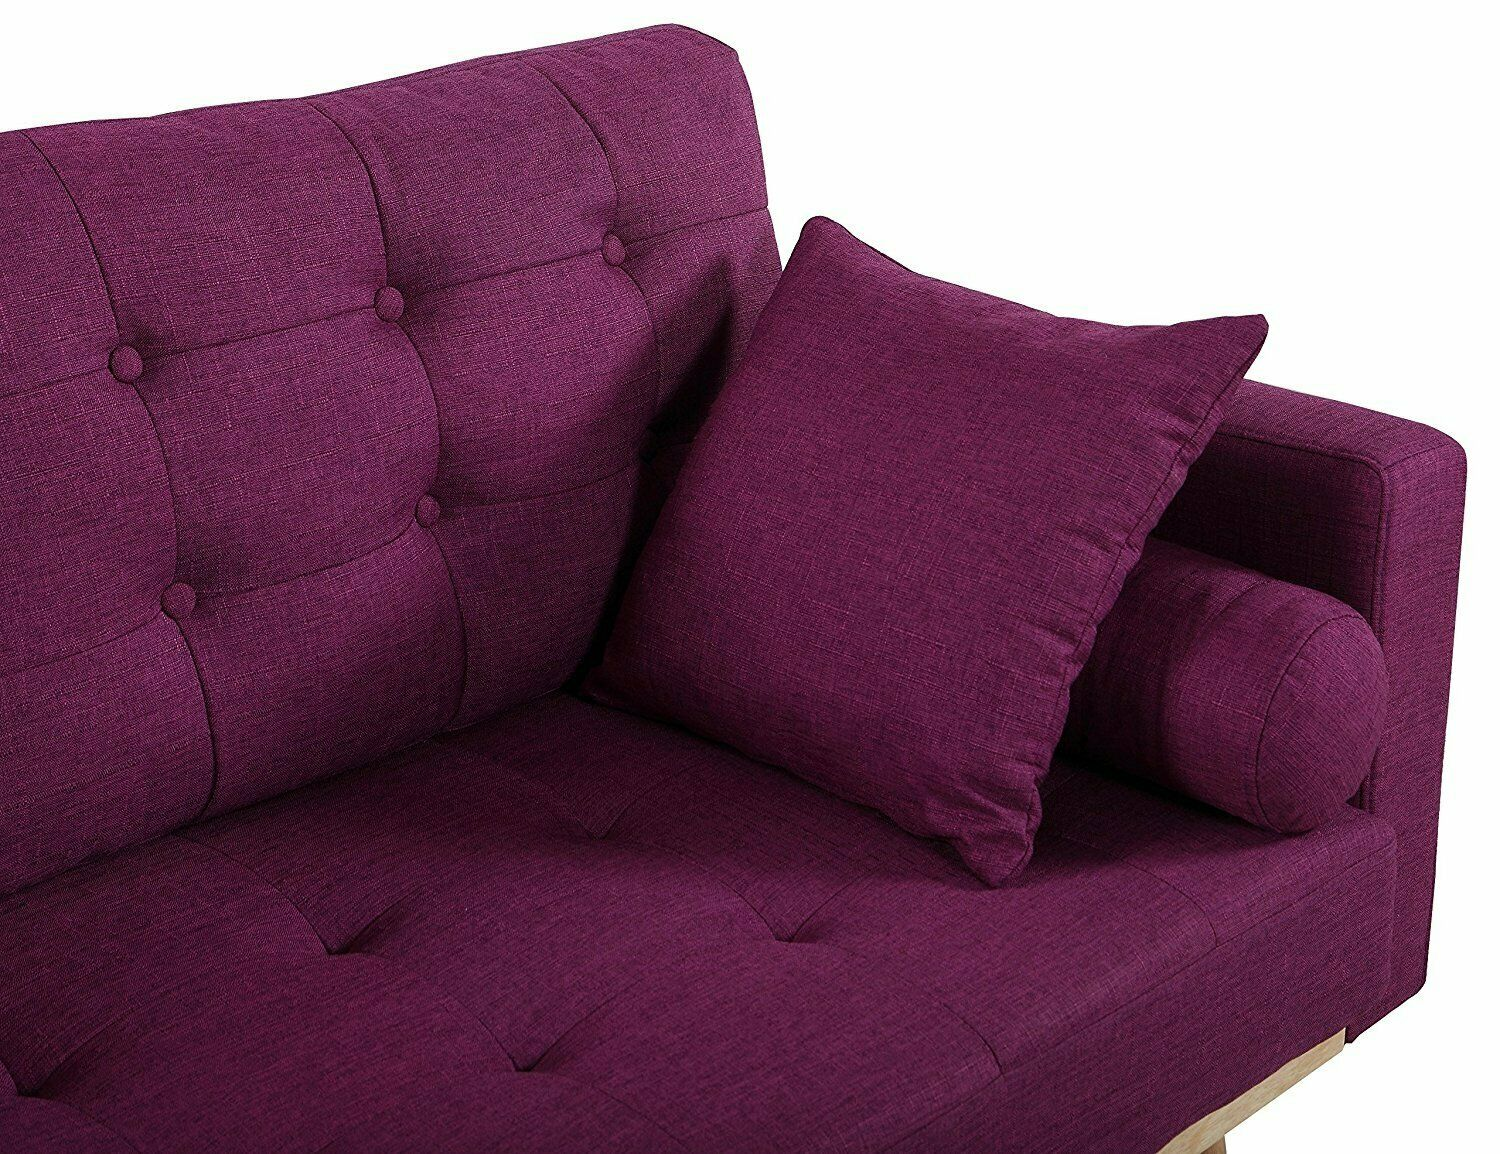 Mid-Century Wood Frame Sofa Modern Tufted Linen Fabric Couch Purple